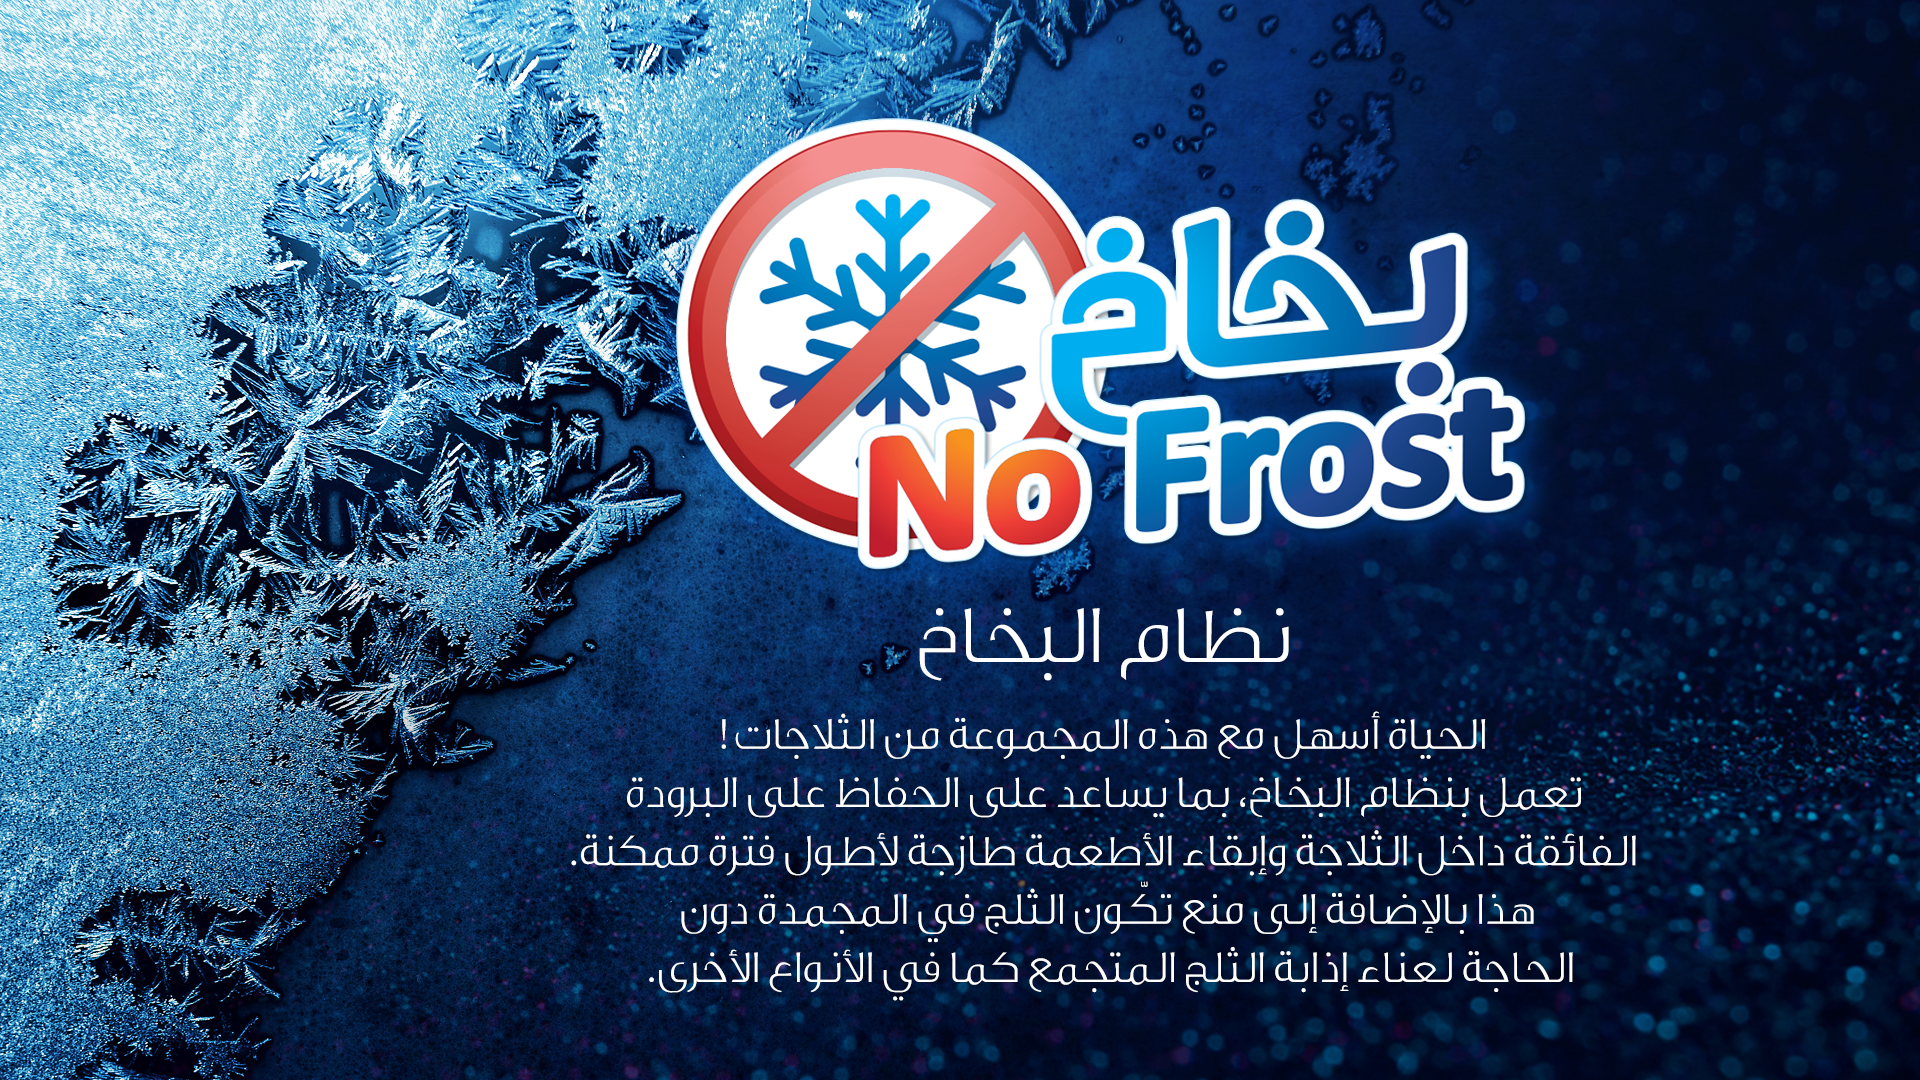 ALHAFIDH  RFHA-TM704NDS Refrigerator No Frost Feature